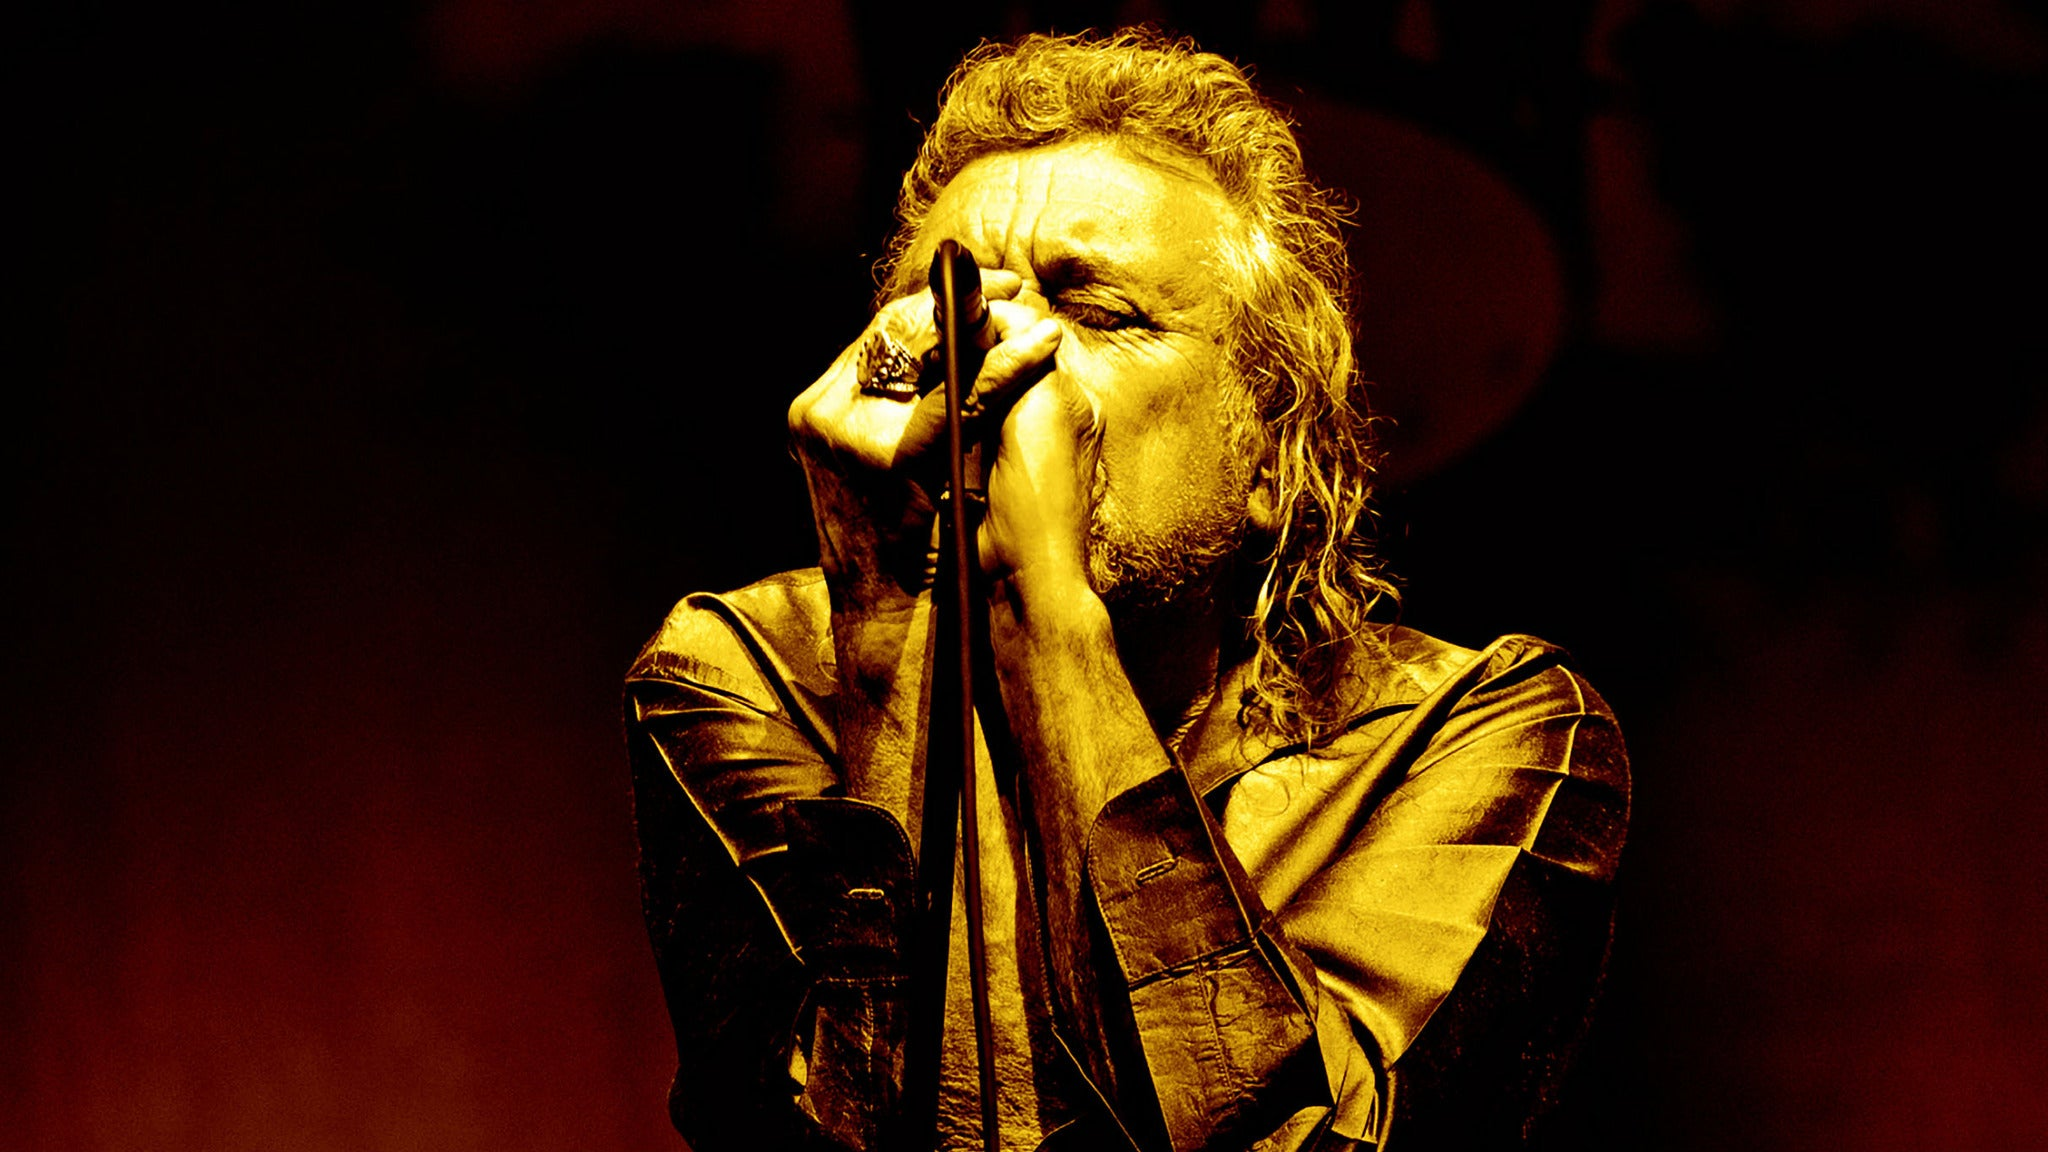 Robert Plant & the SSS + Nathaniel Rateliff & TNS